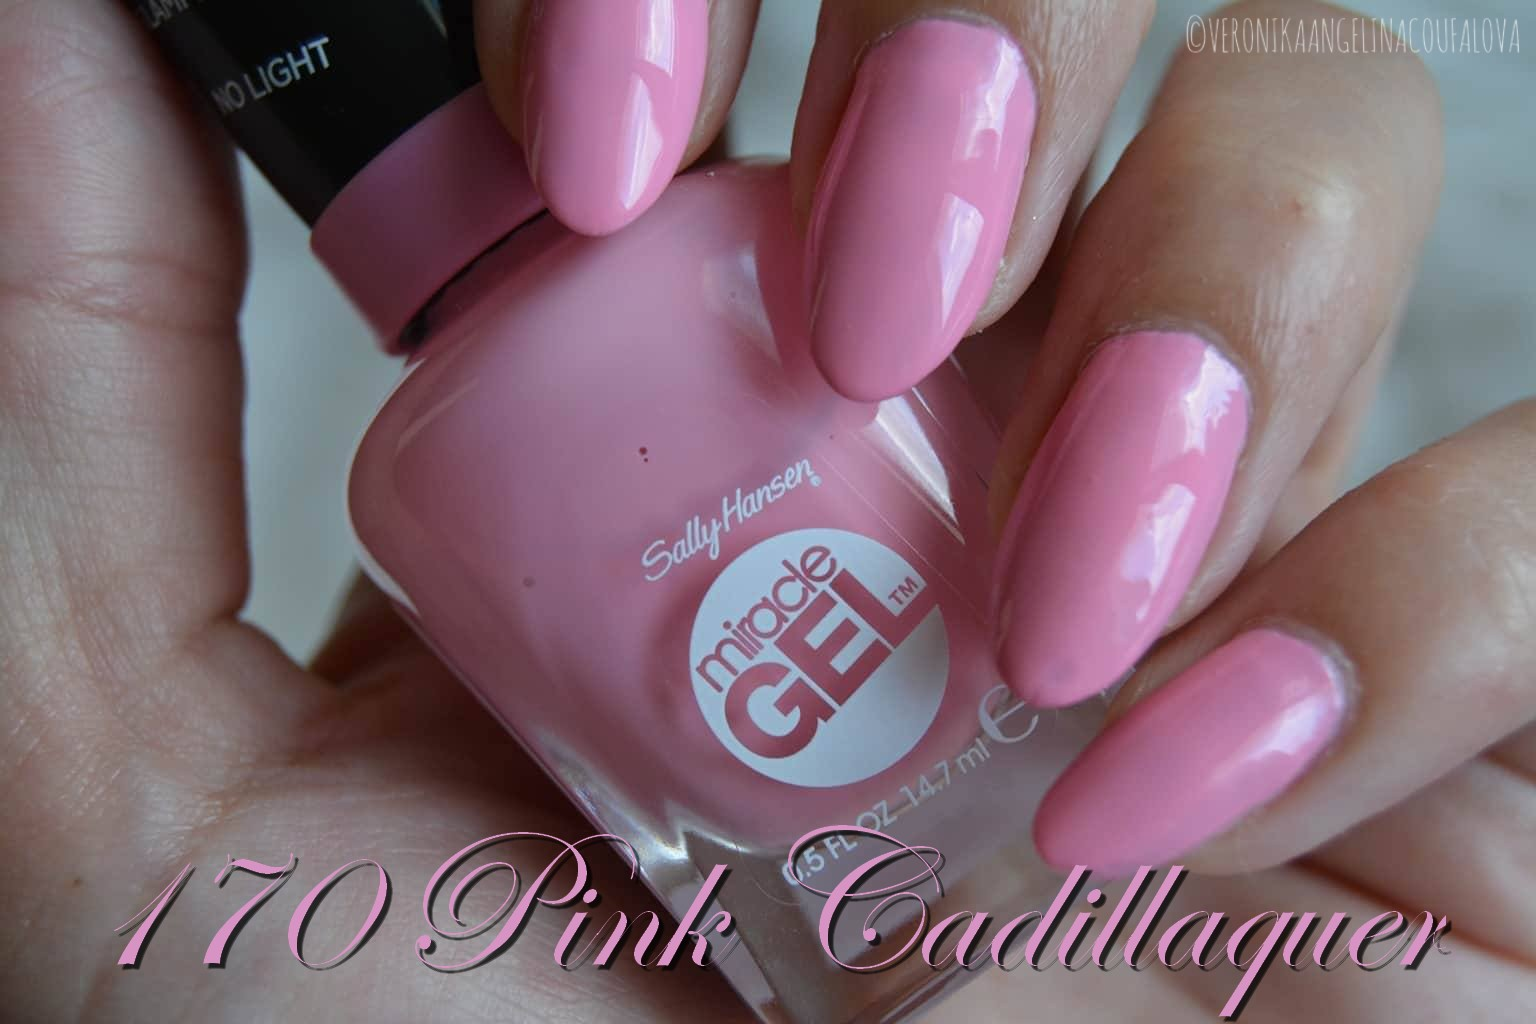 Angelina Beauty Blogger Sally Hansen Miracle Gel Gelovy Lak Na Nehty Bez Uziti Uv Led Lampy